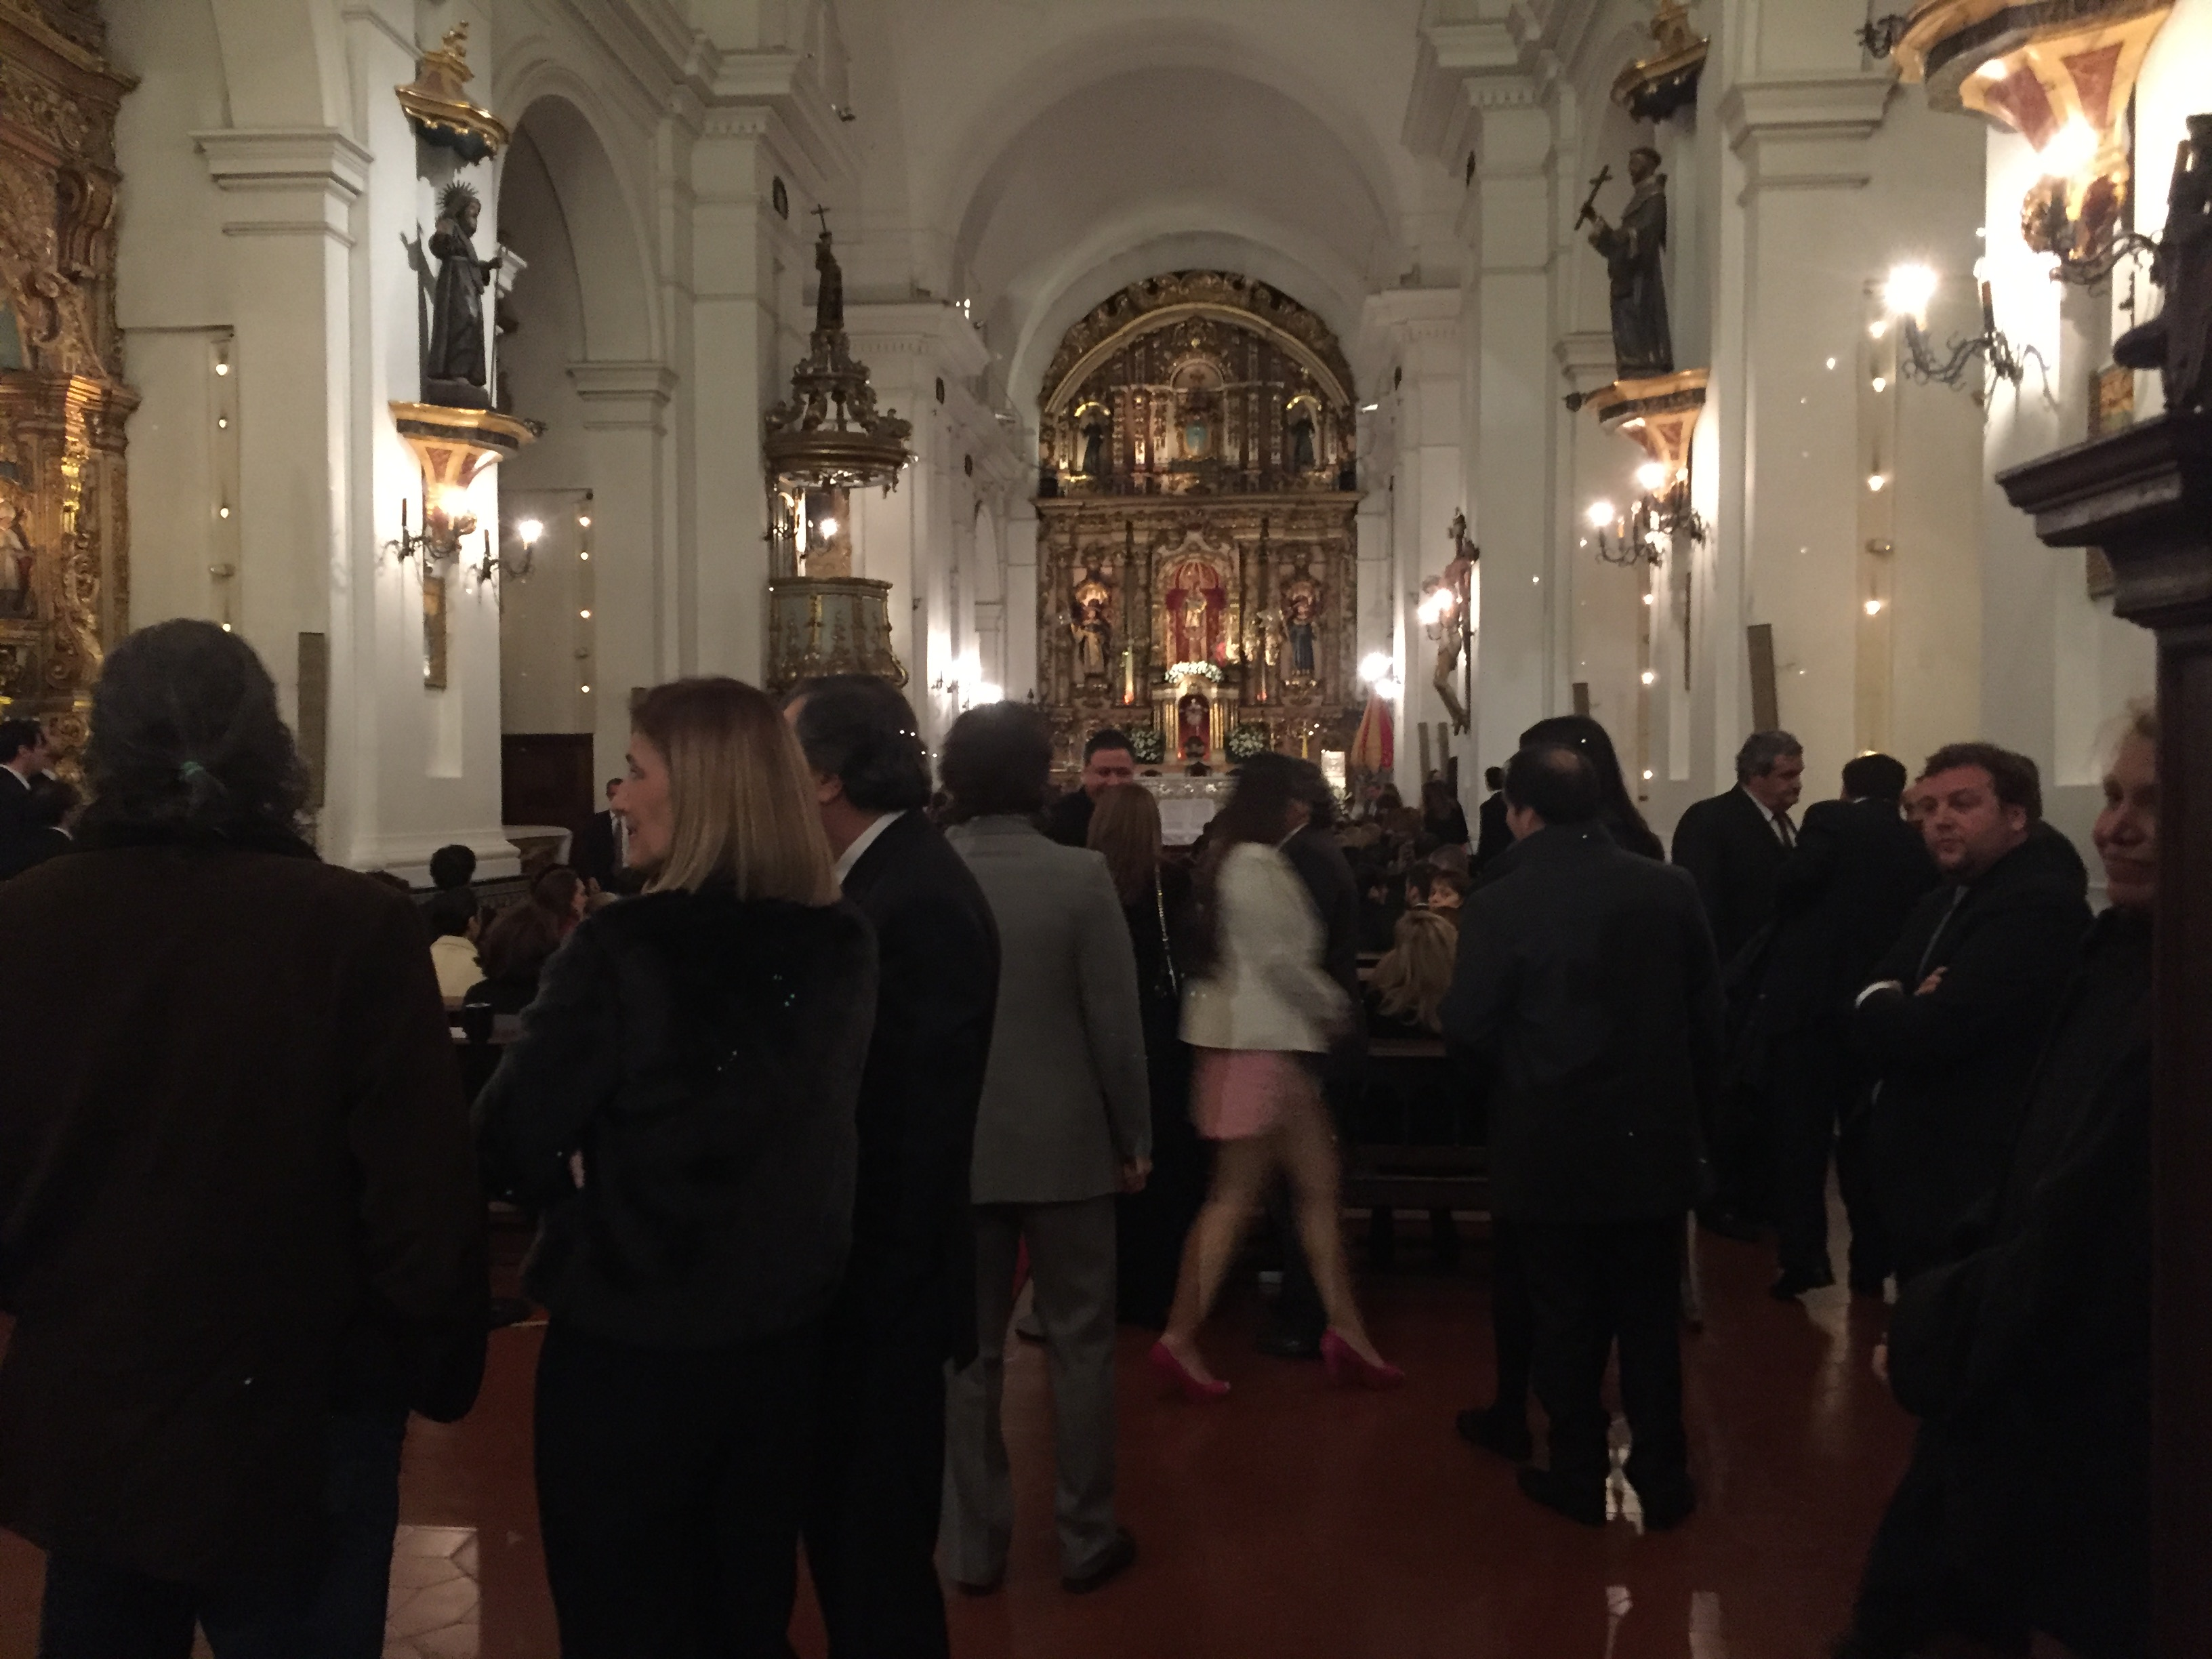 CAPAStudyAbroad_BuenosAires_Spring2016_From_Tommy_Sullivan_-_Church2-1.jpg